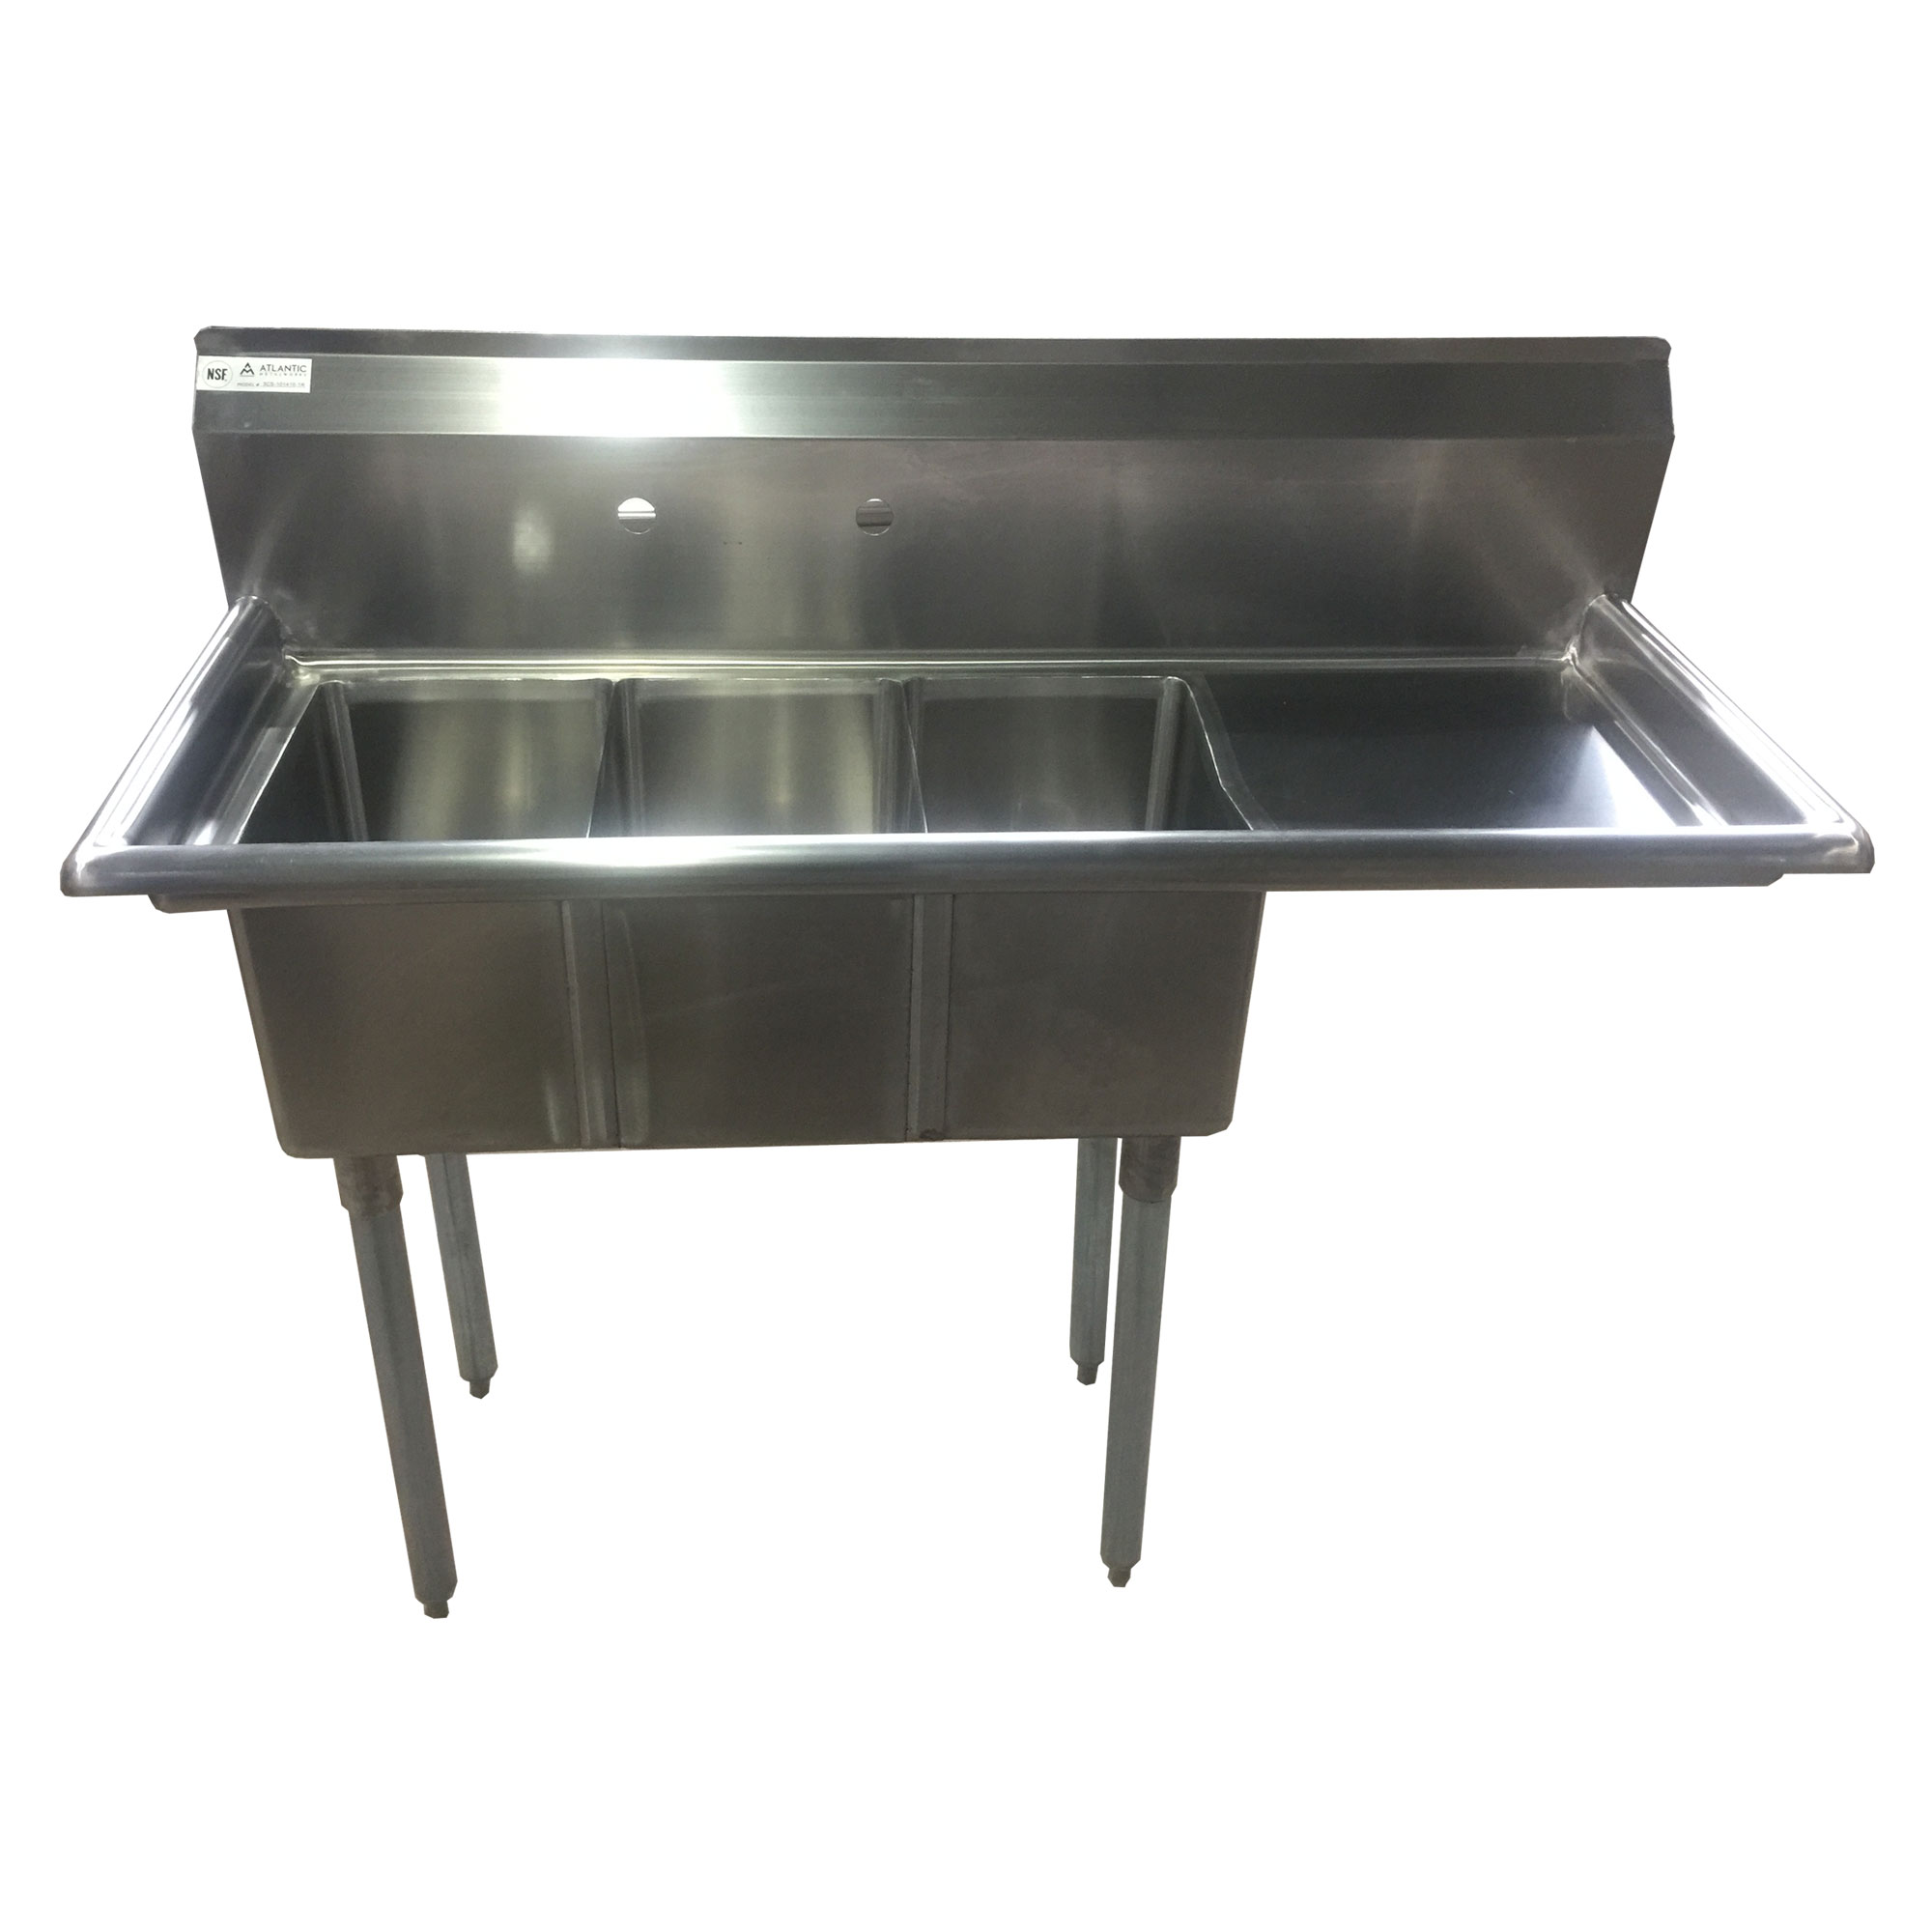 Image of Atlantic Metalworks 3CS-101410-1* - 10x14x10 Economy 1 Drainboard 3 Bowl Sink